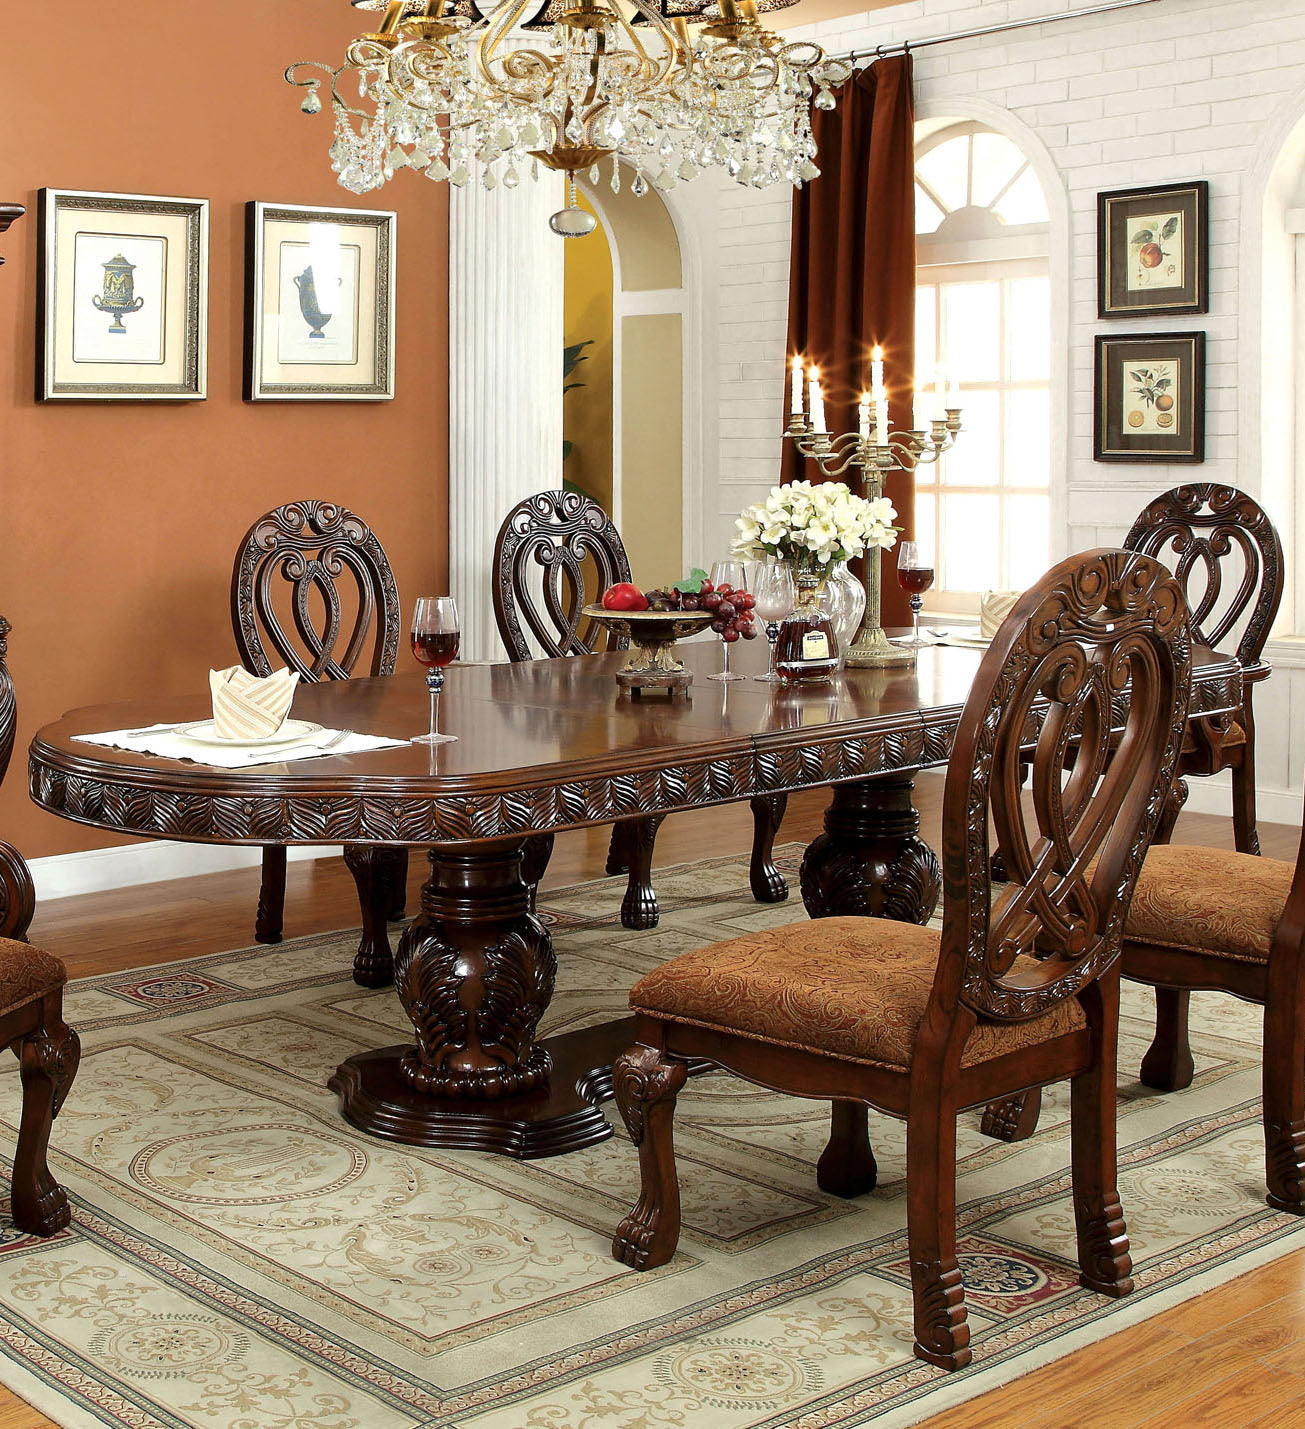 Wyndmere CM3186CH-T Cherry Finish Formal Dining Table with 2 Leaves